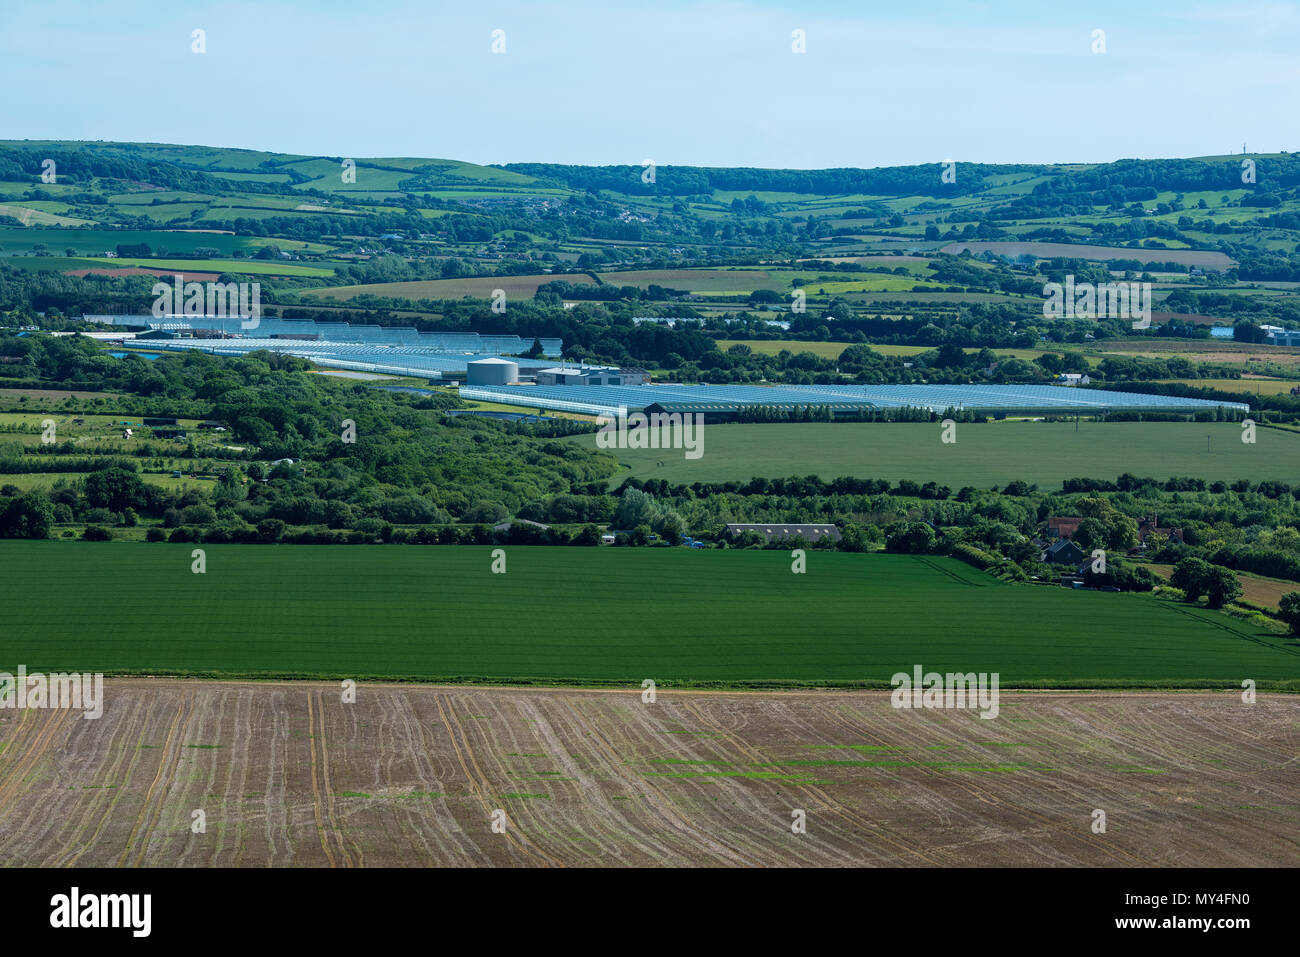 The large enormous greenhouses and glasshouses at arreton on the Isle of Wight. Wight salads growing a variety of salad vegetables. Commercial scale. - Stock Image